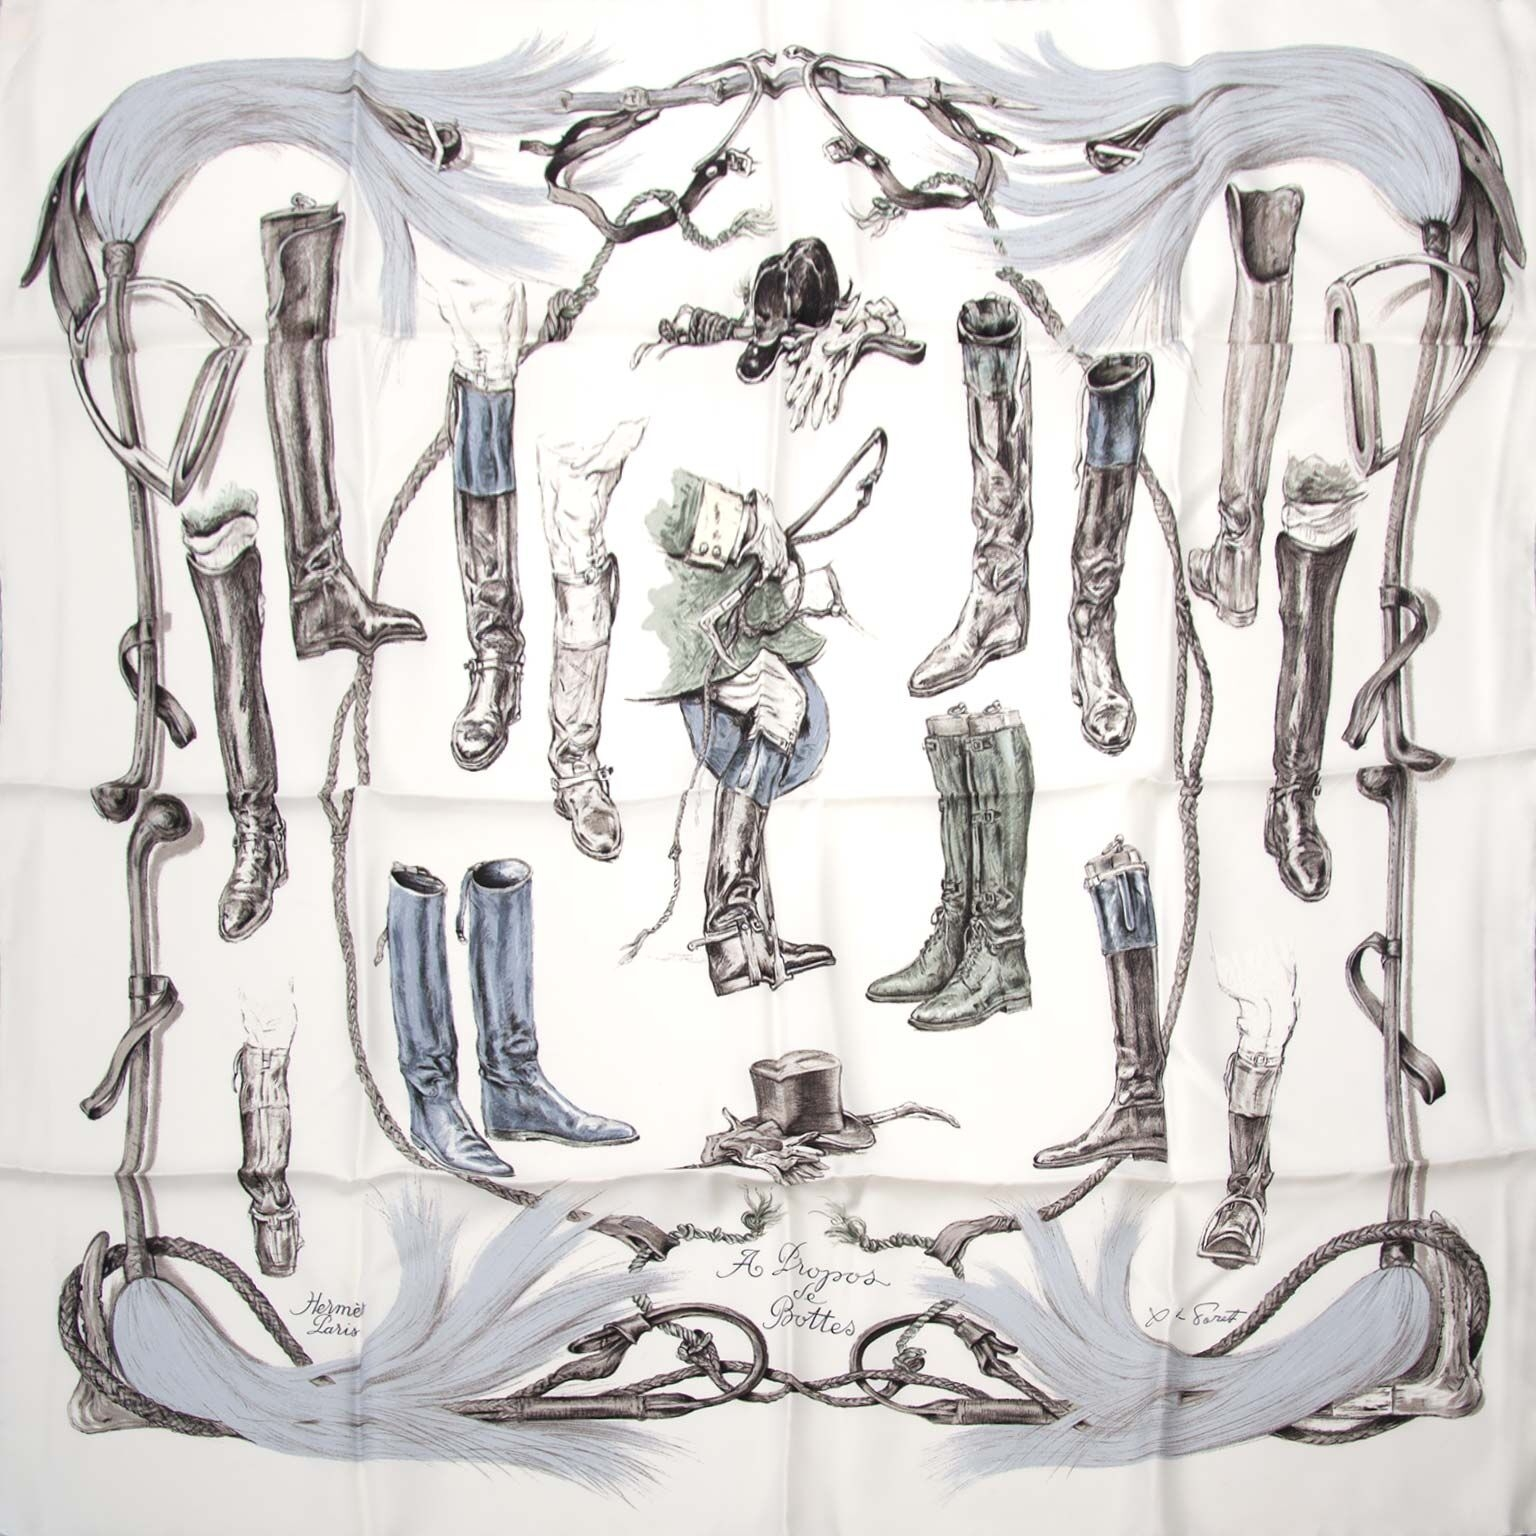 buy Hermes Carre Silk Scarf A propos De Bottes at labellov for a good price